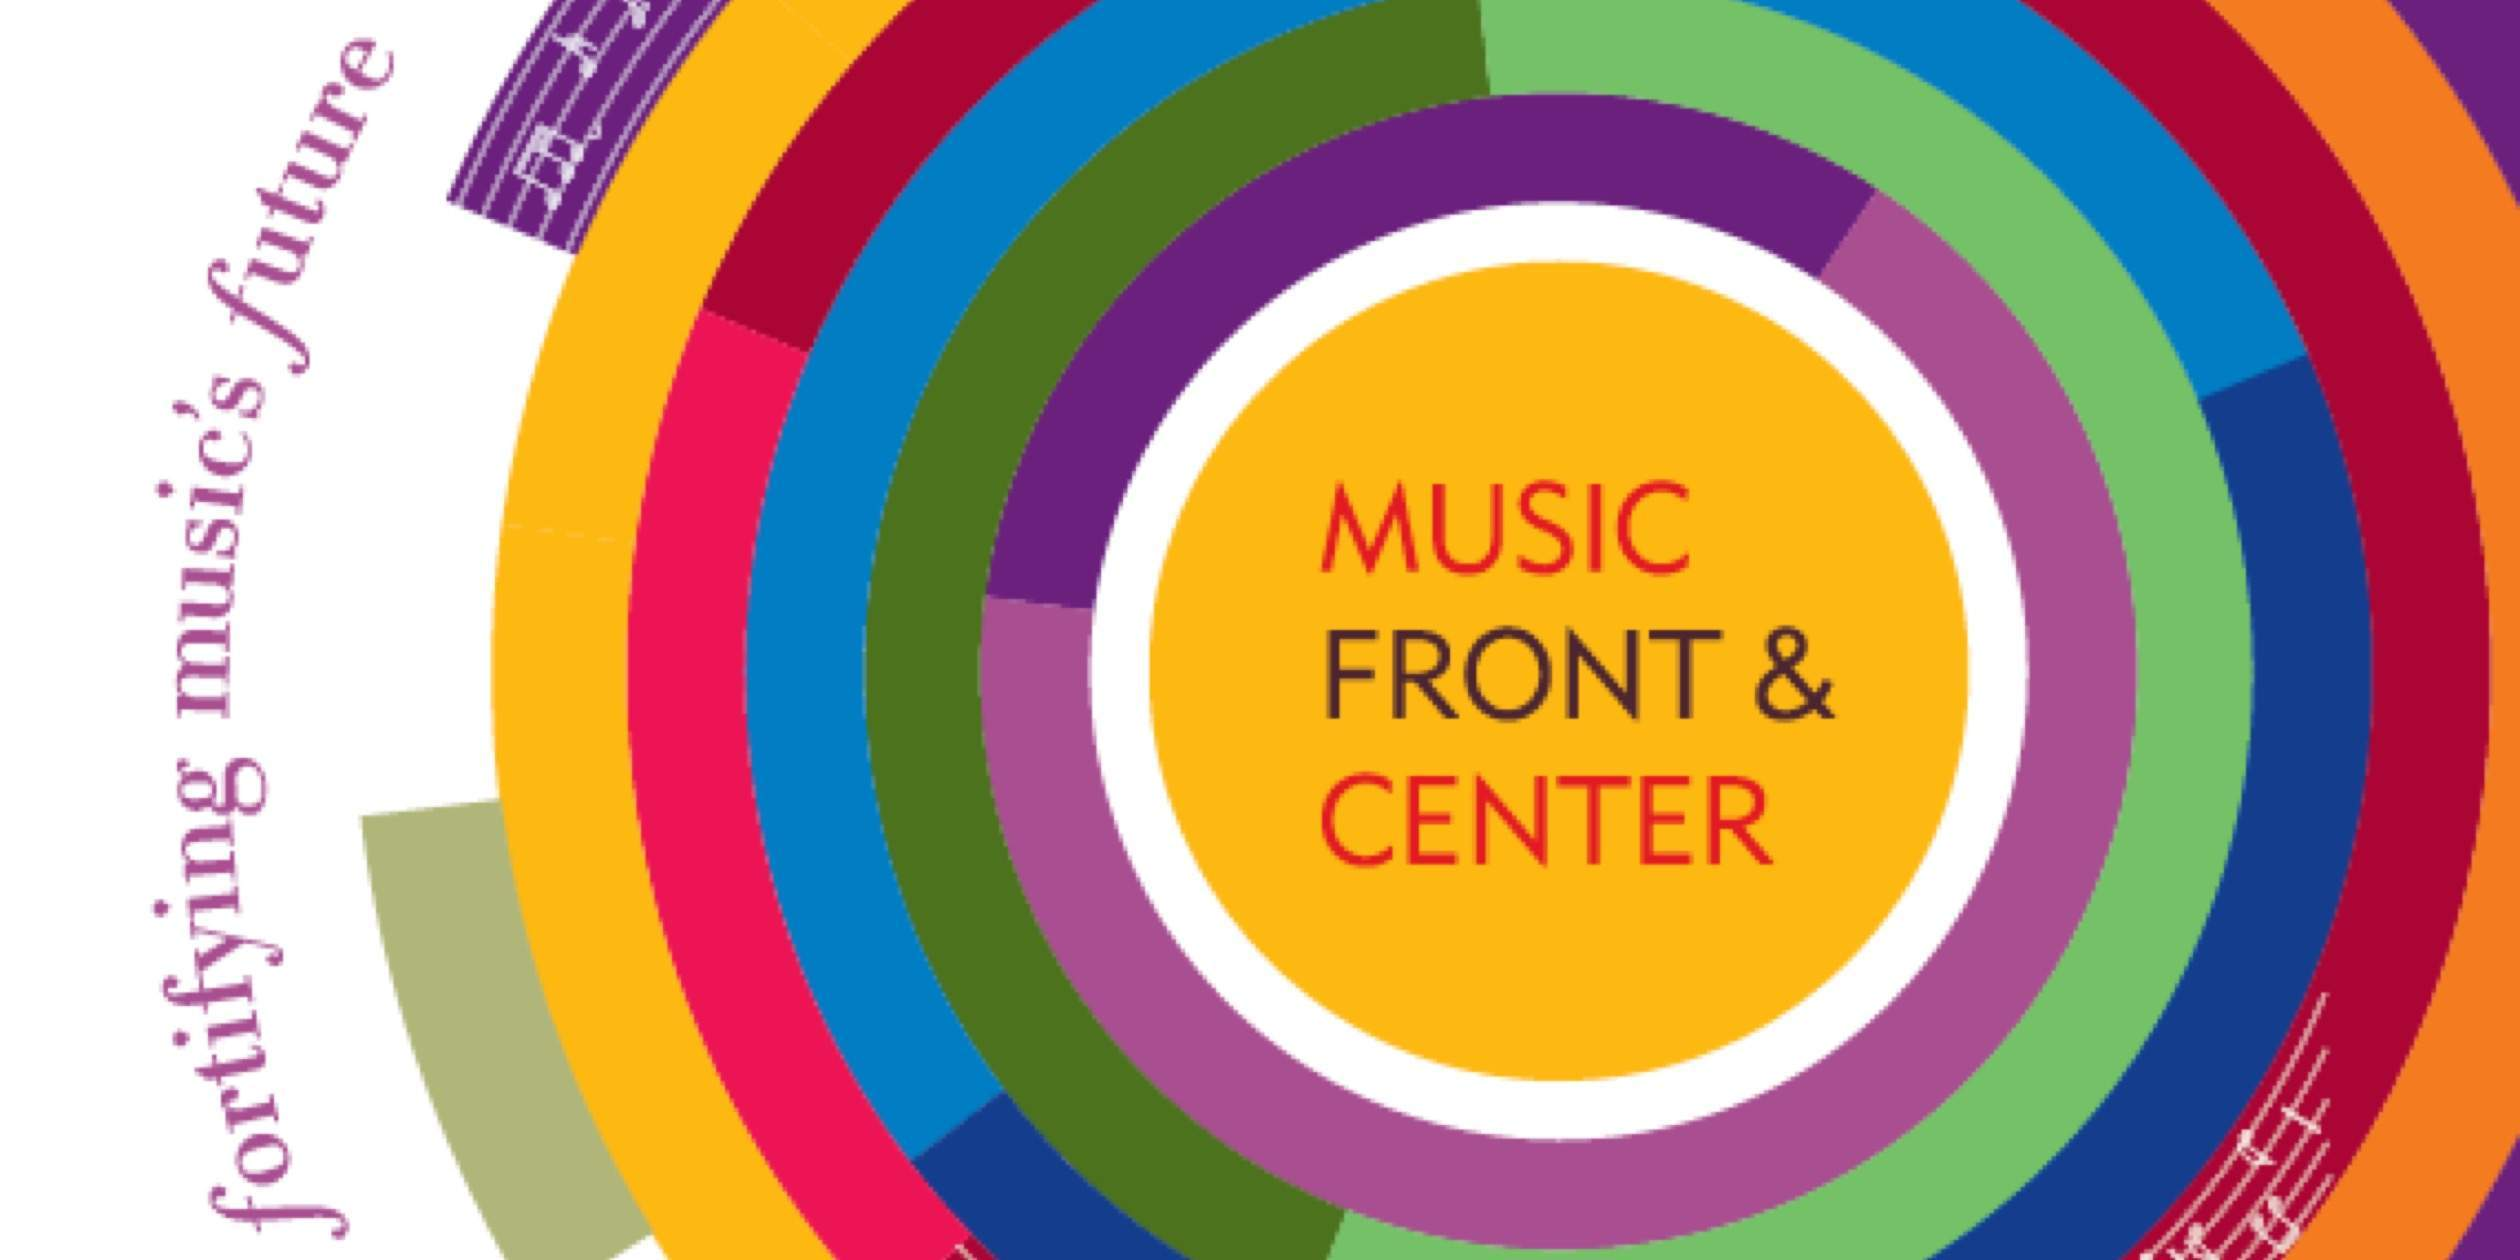 We're Putting Music Front & Center!